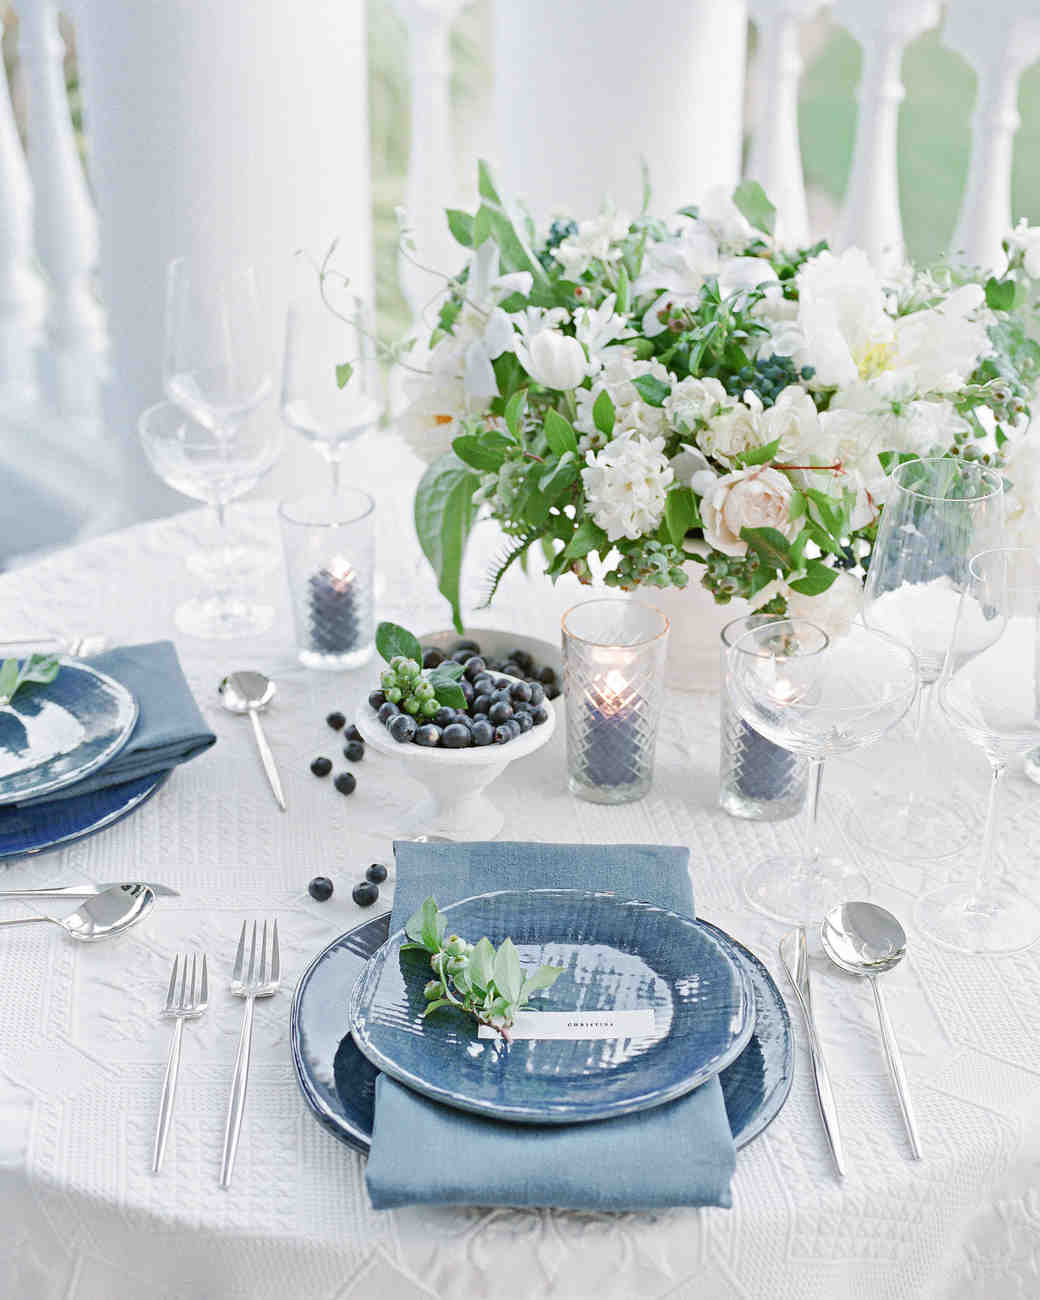 christina matt wedding charleston sc table setting